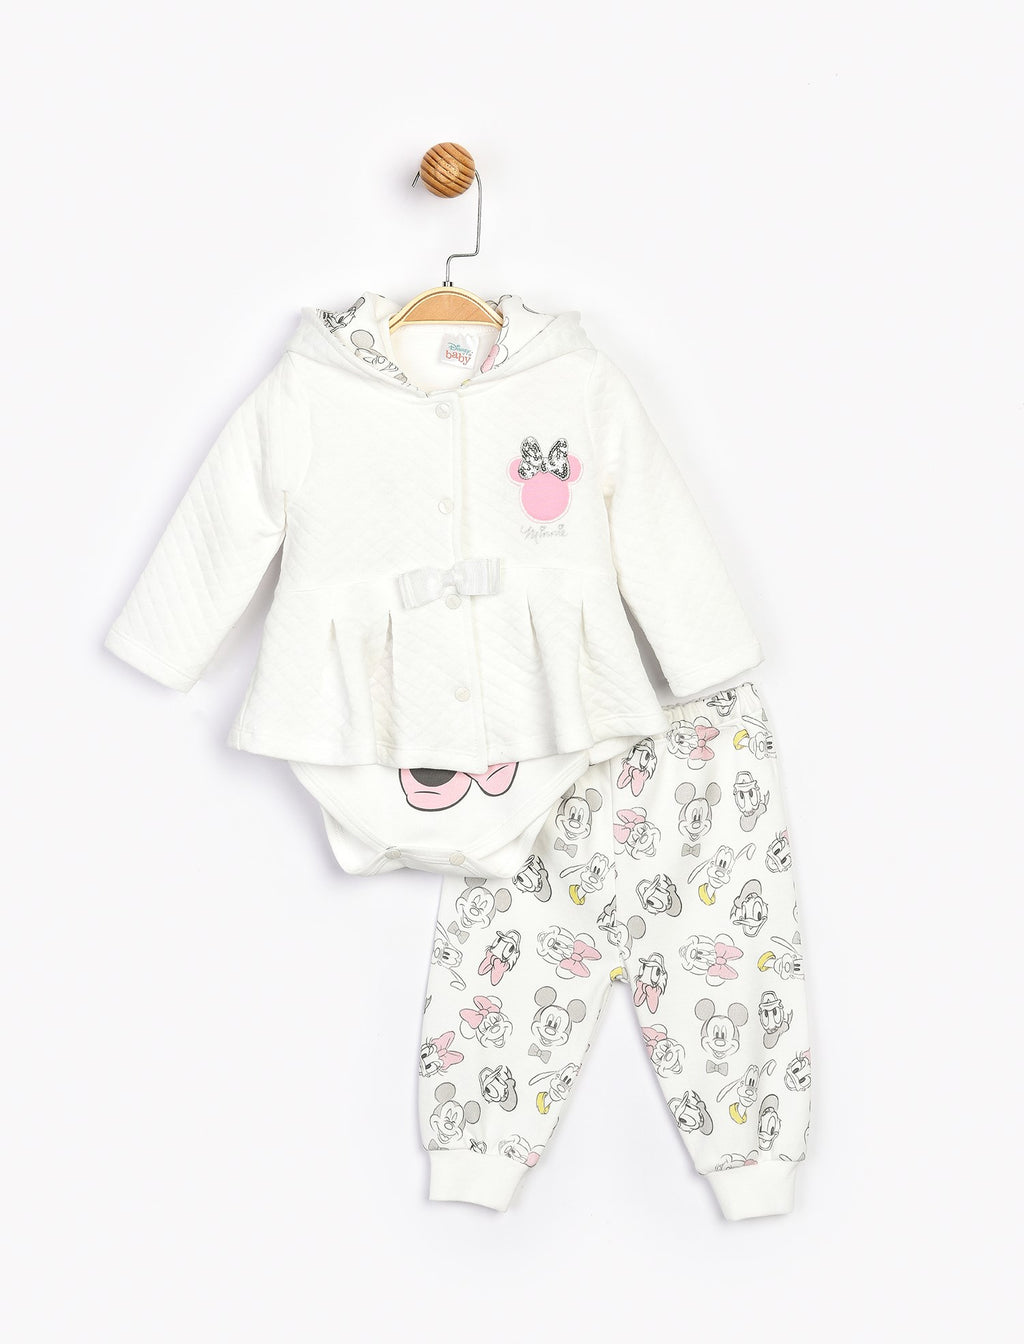 Baby Girl's Outfit Set - 3 Pieces